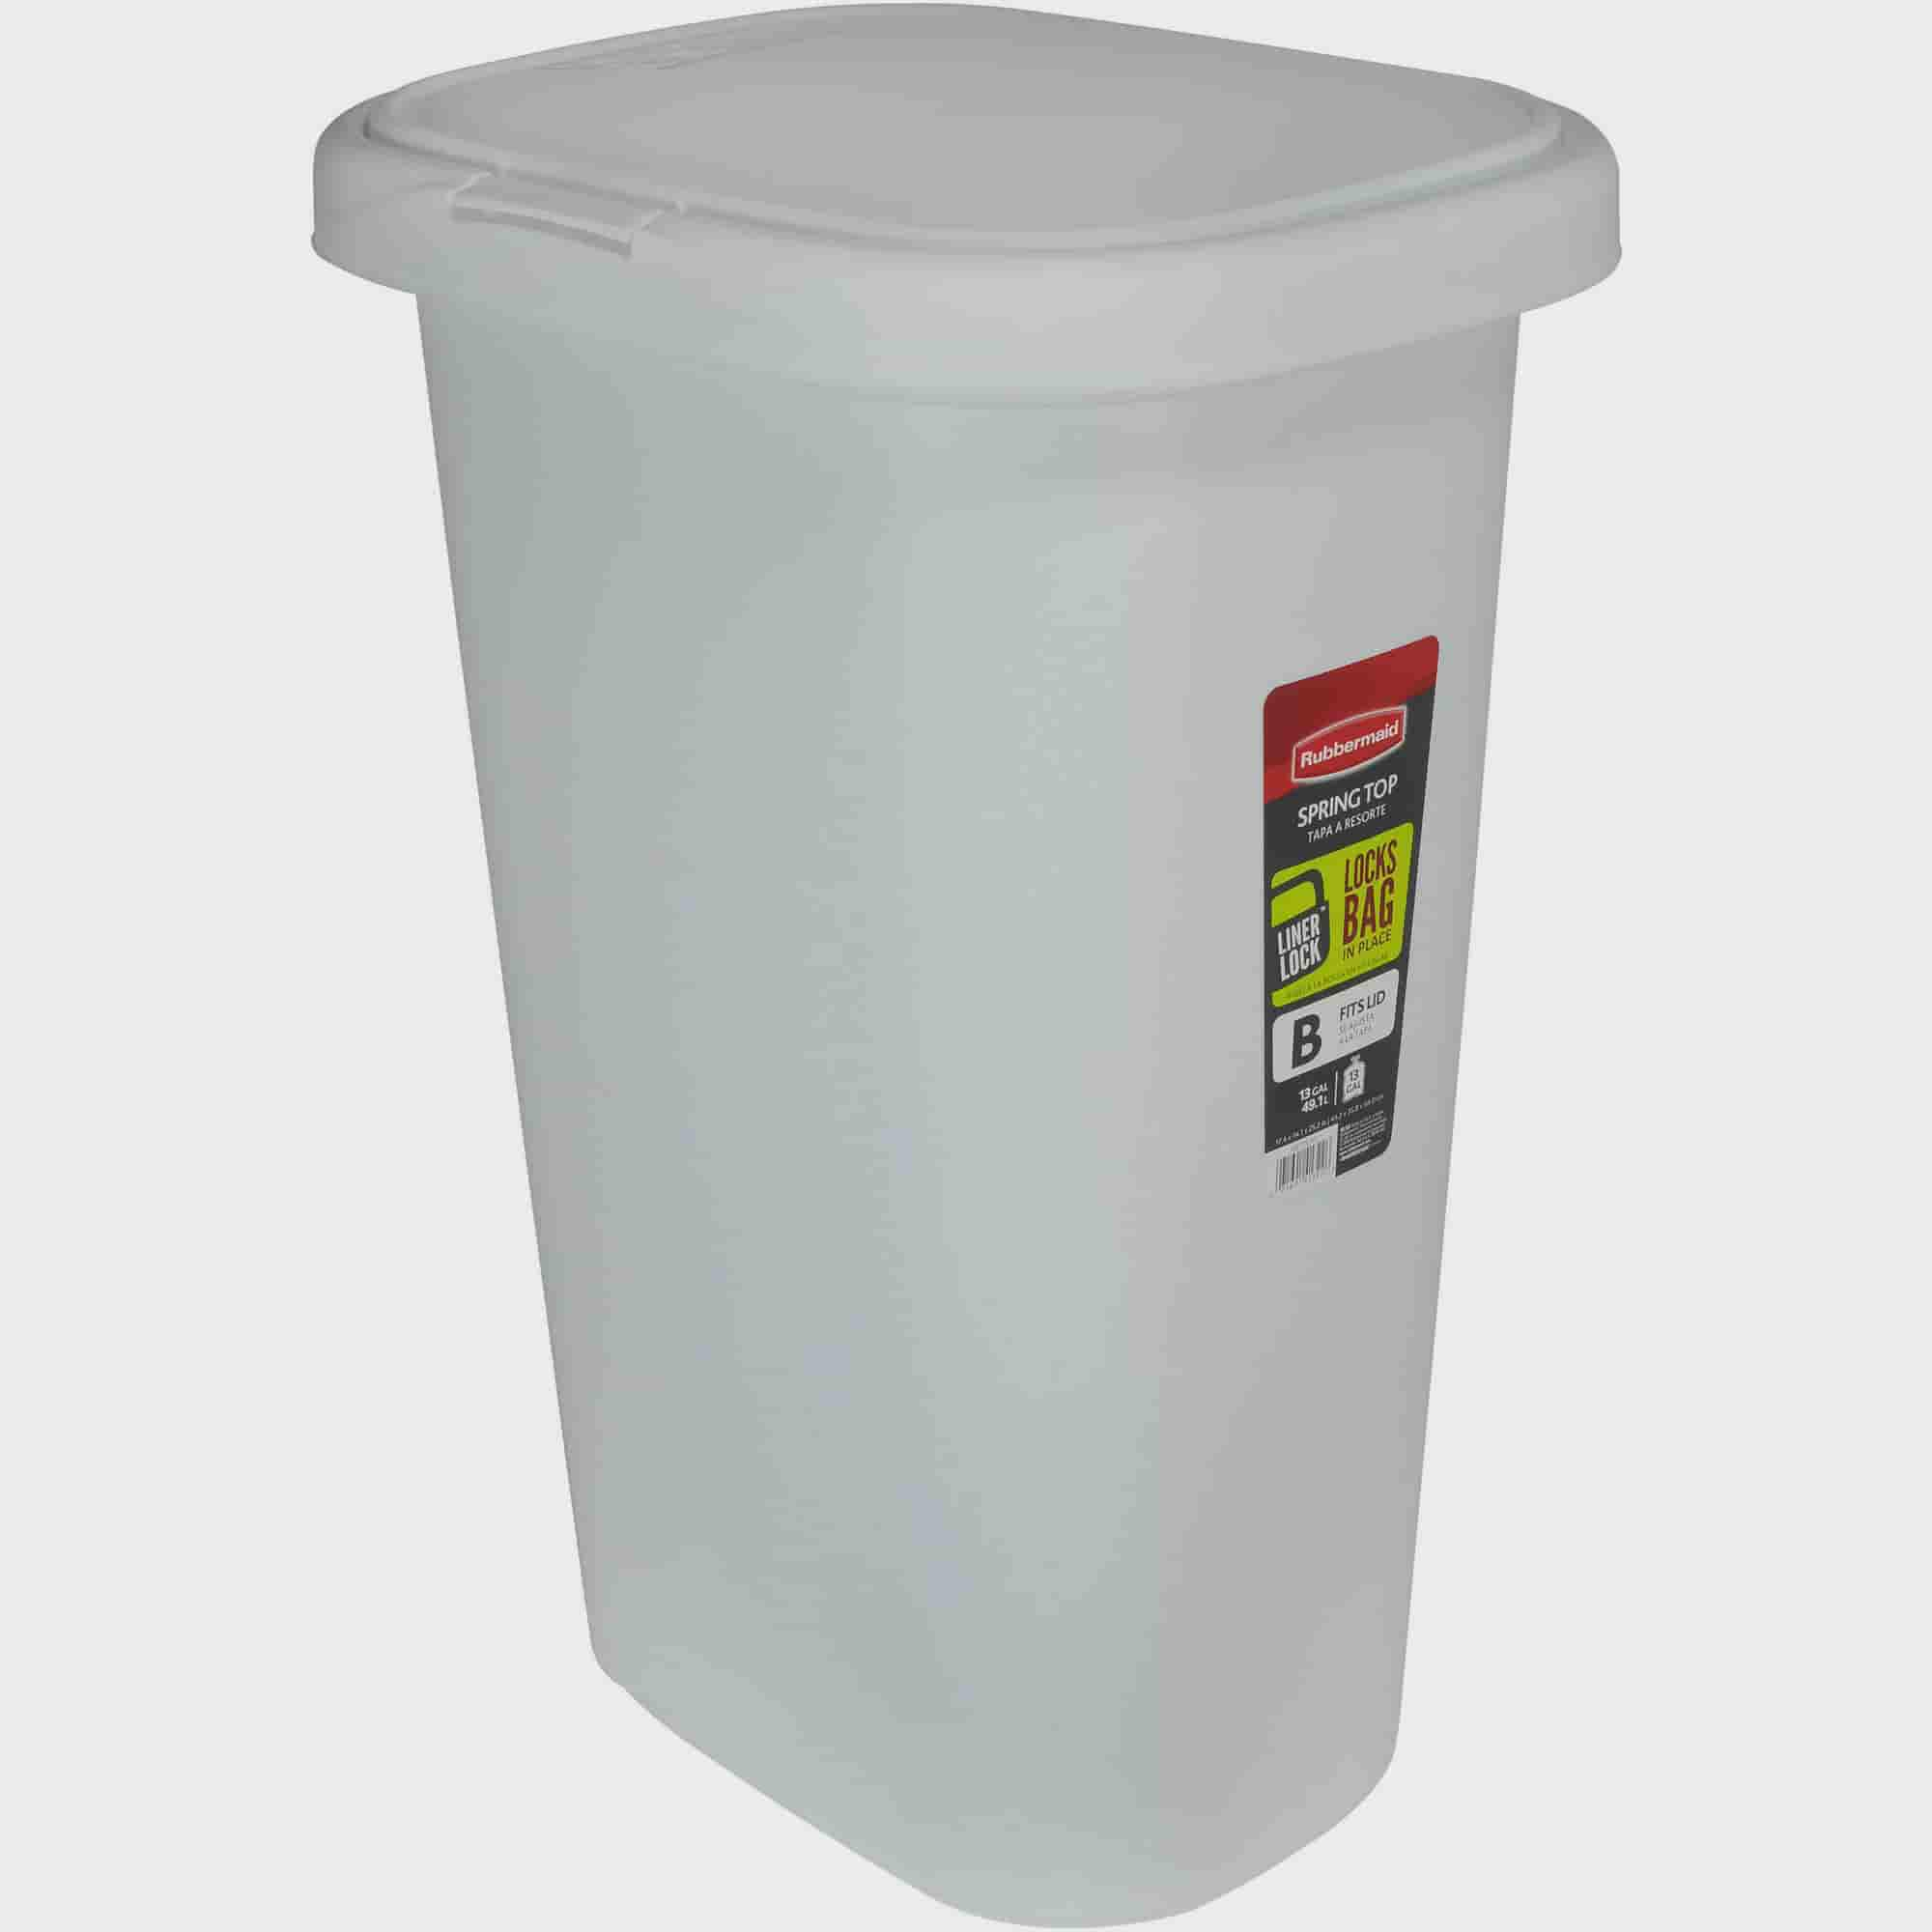 Rubbermaid LinerLock Spring Top Trash Can, 13 Gal, White